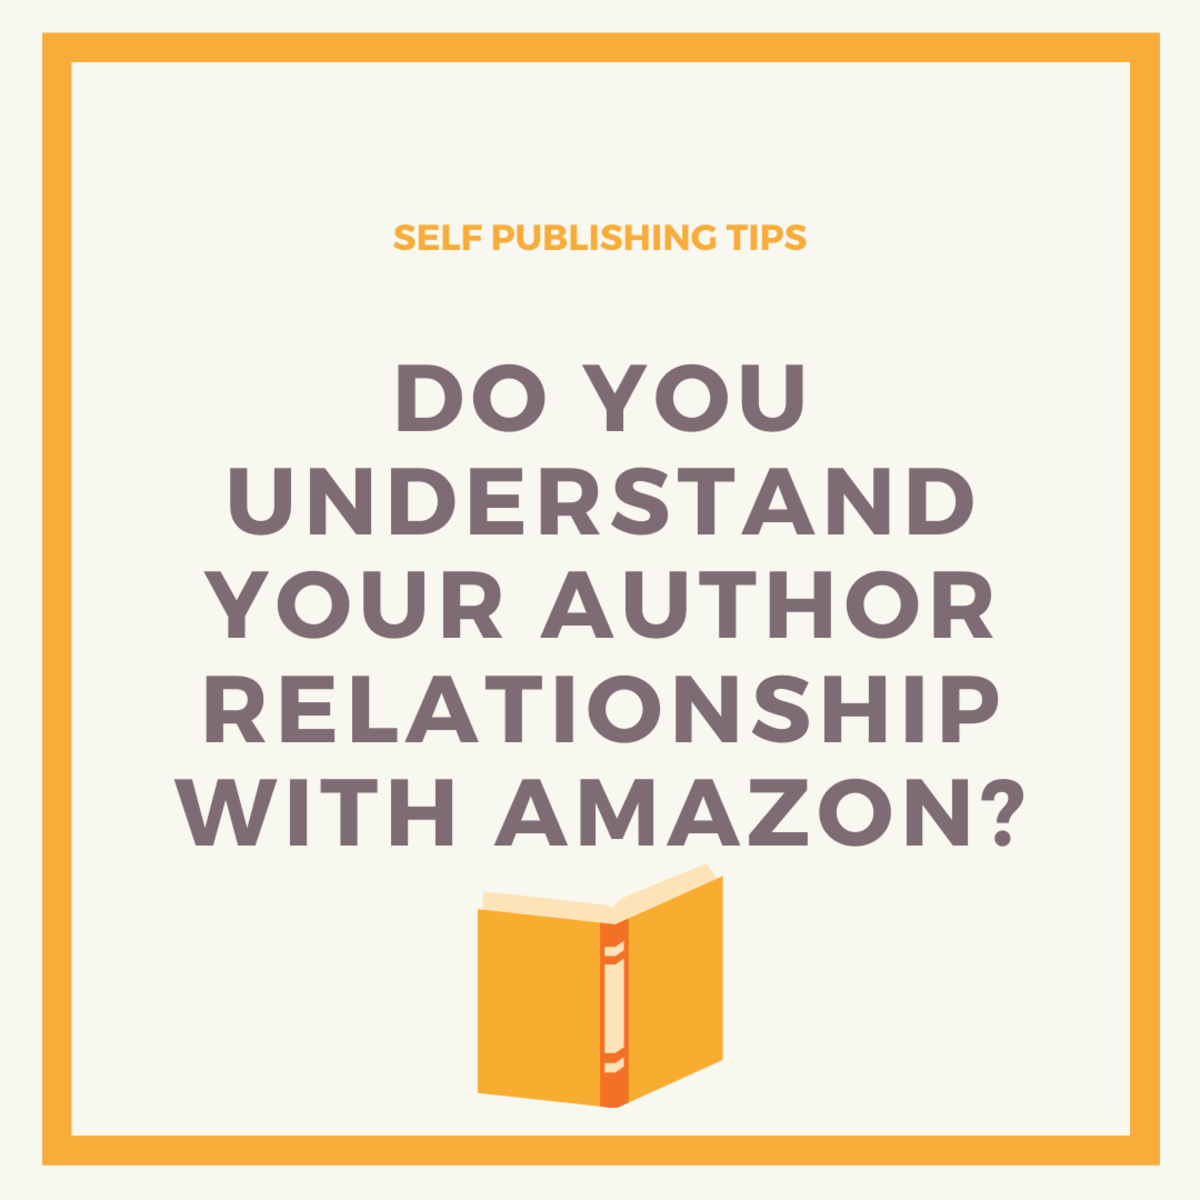 Authors are often misinformed or confused about their relationship with Amazon.